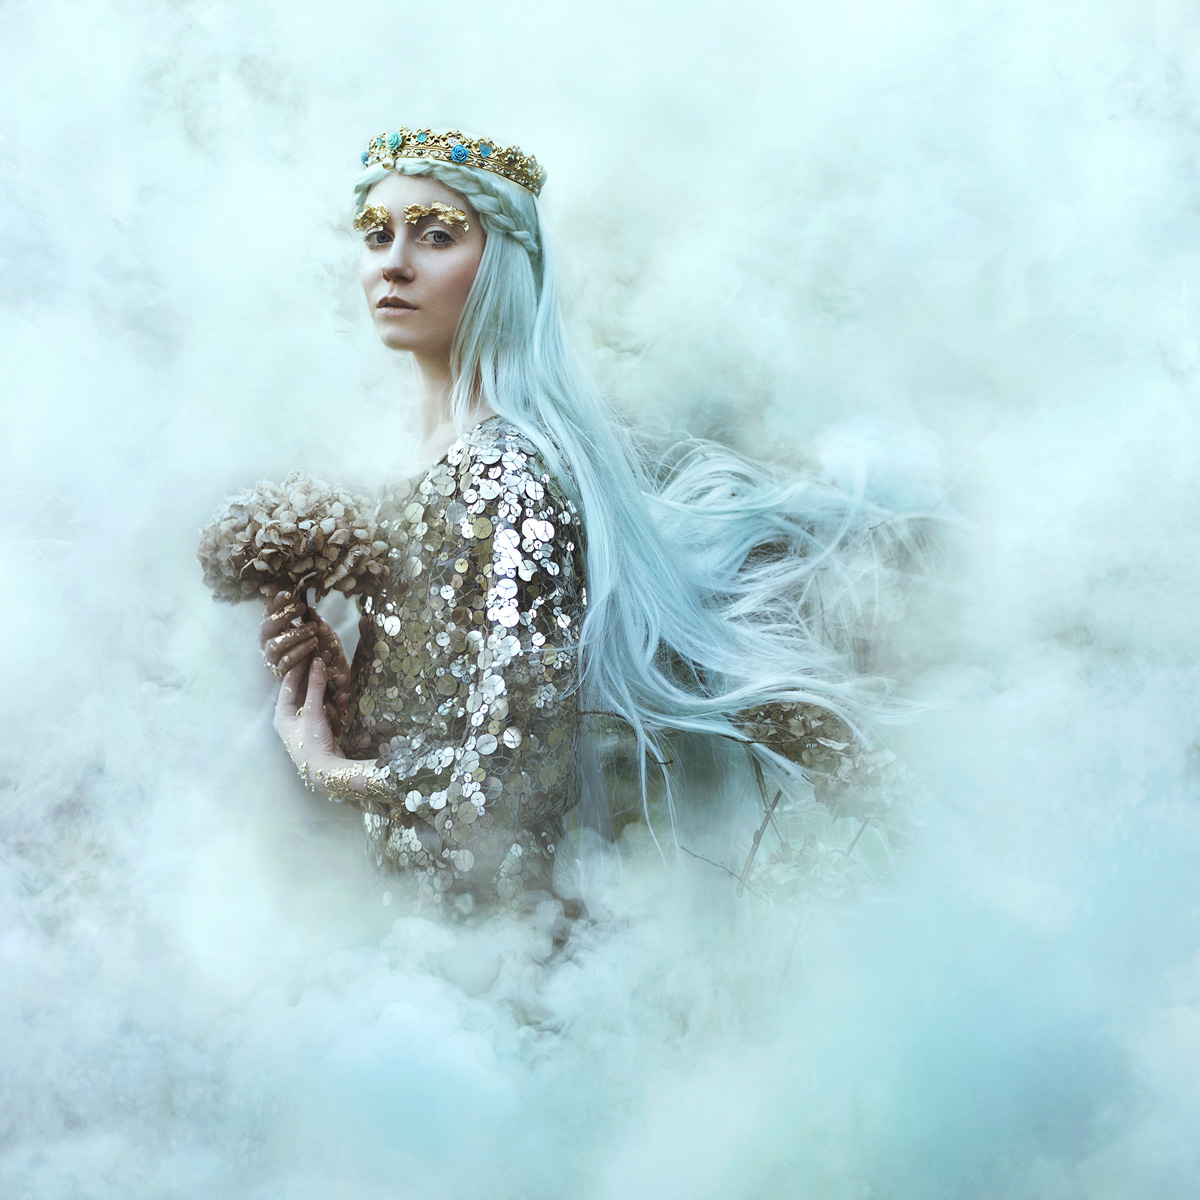 Bella Kotak Photography - Lulu Lockhart